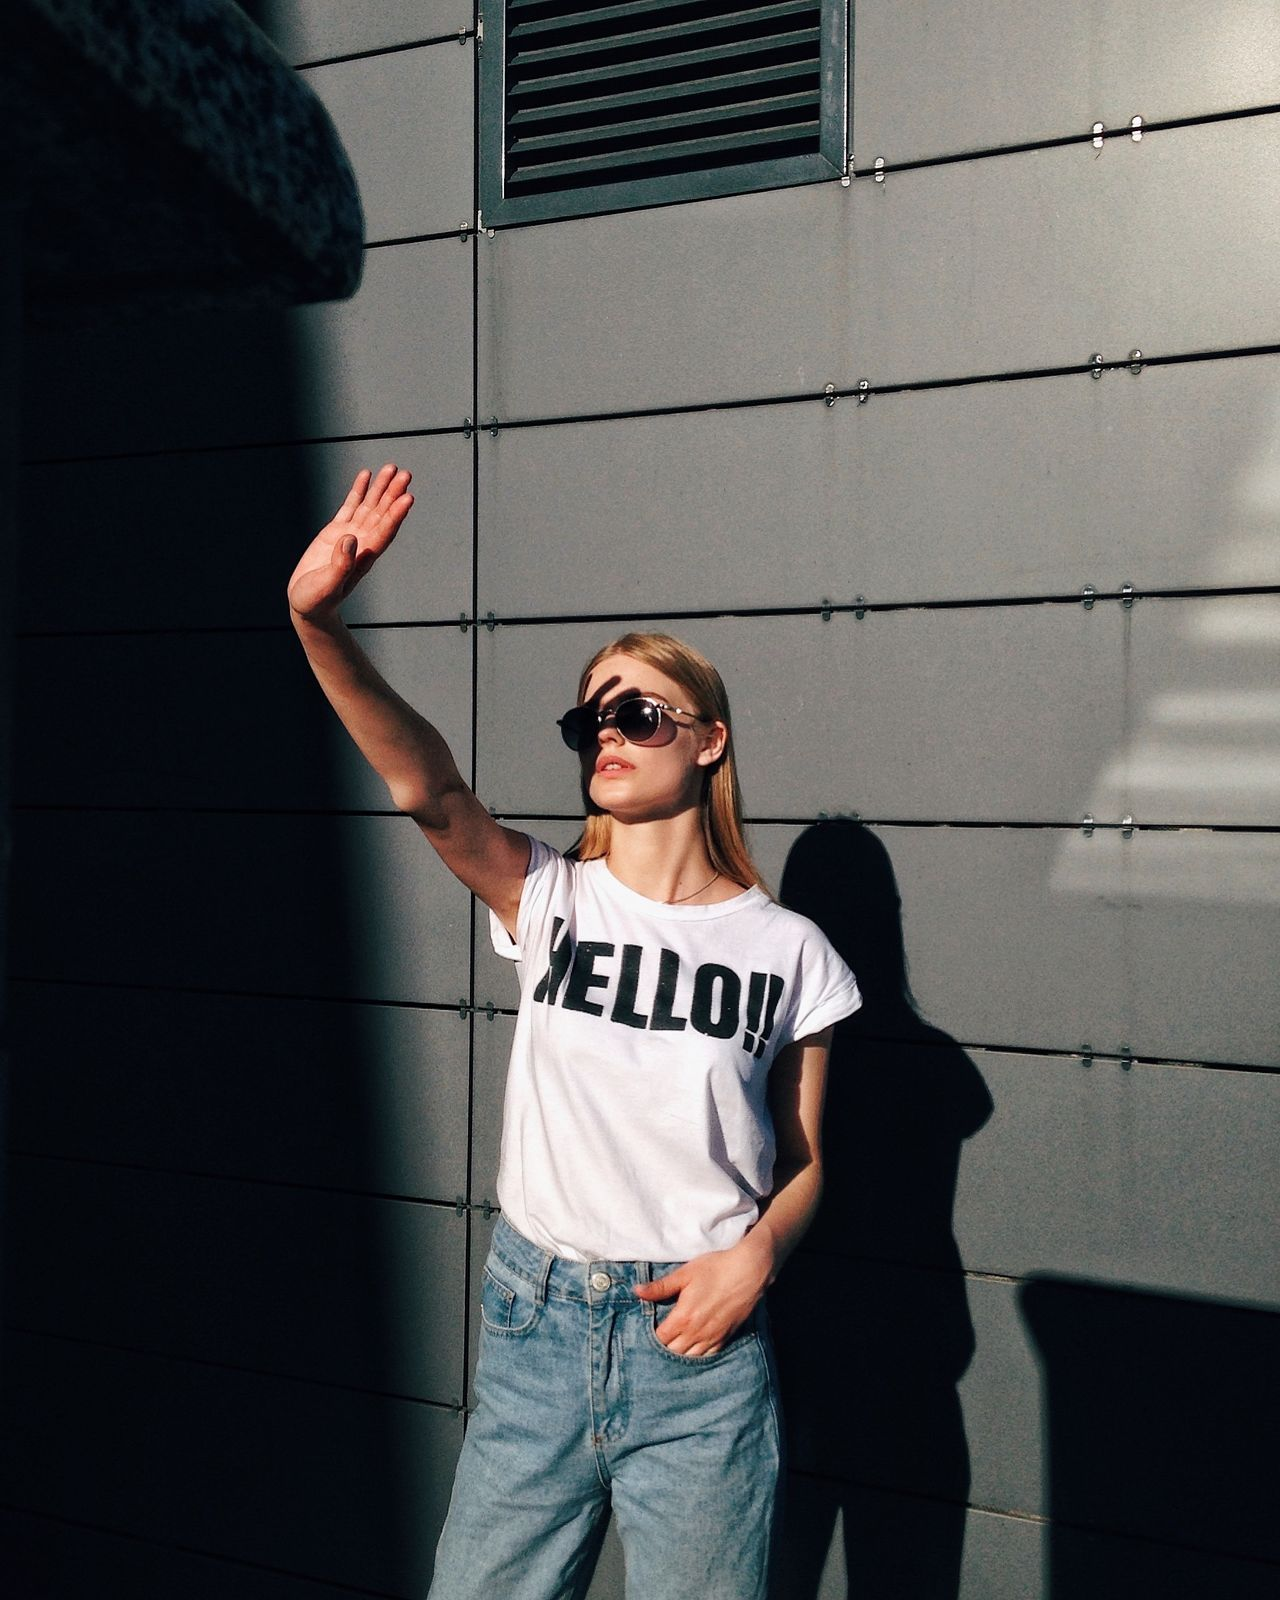 Say hello Sunglasses Cool One Person Standing Real People Outdoors Architecture Young Adult People Hello Outfit #OOTD Portrait Shadows & Lights Girl